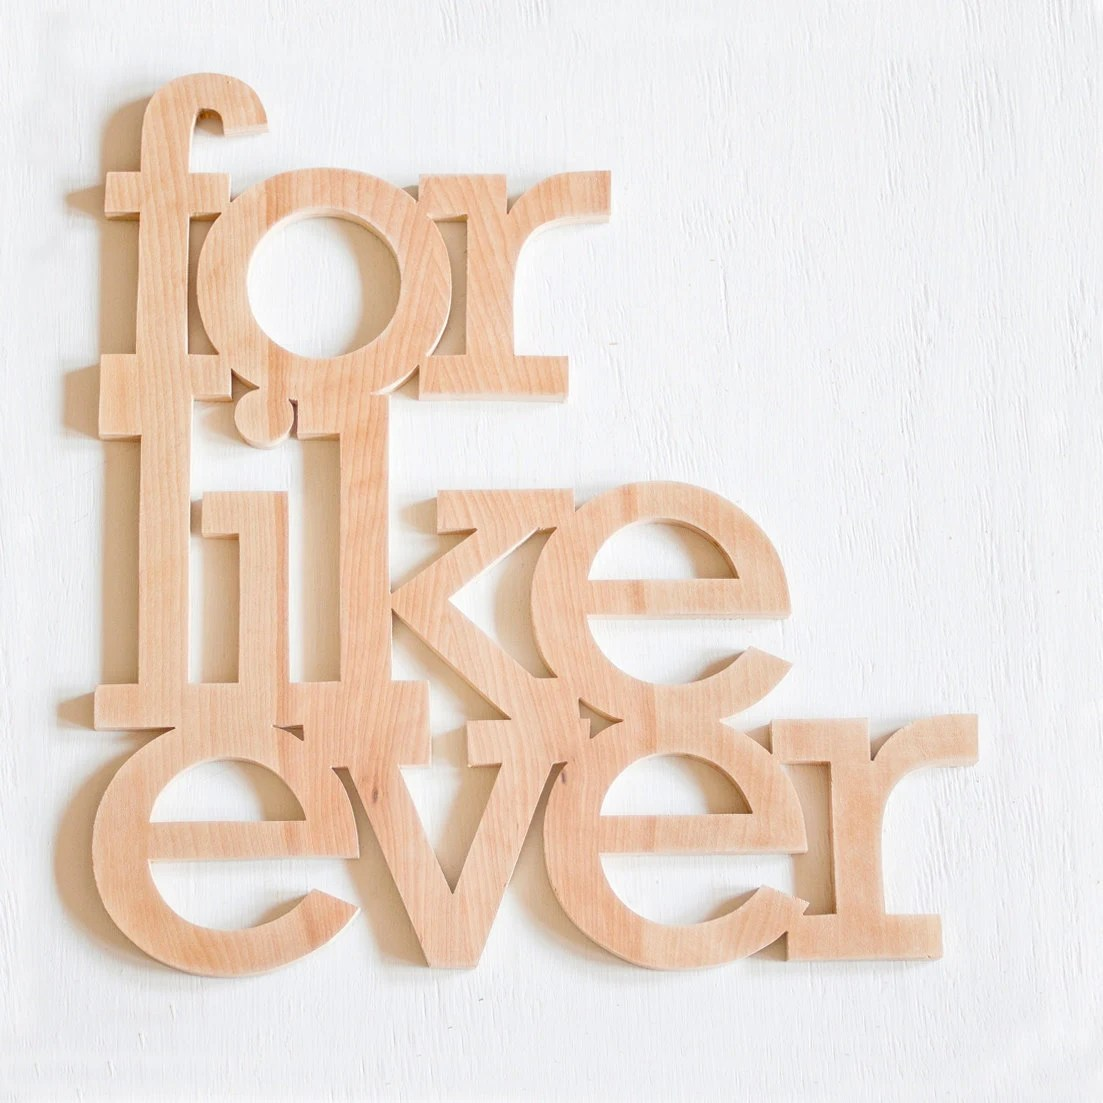 for like ever sign made from recycled slabs of wood 18x16.5